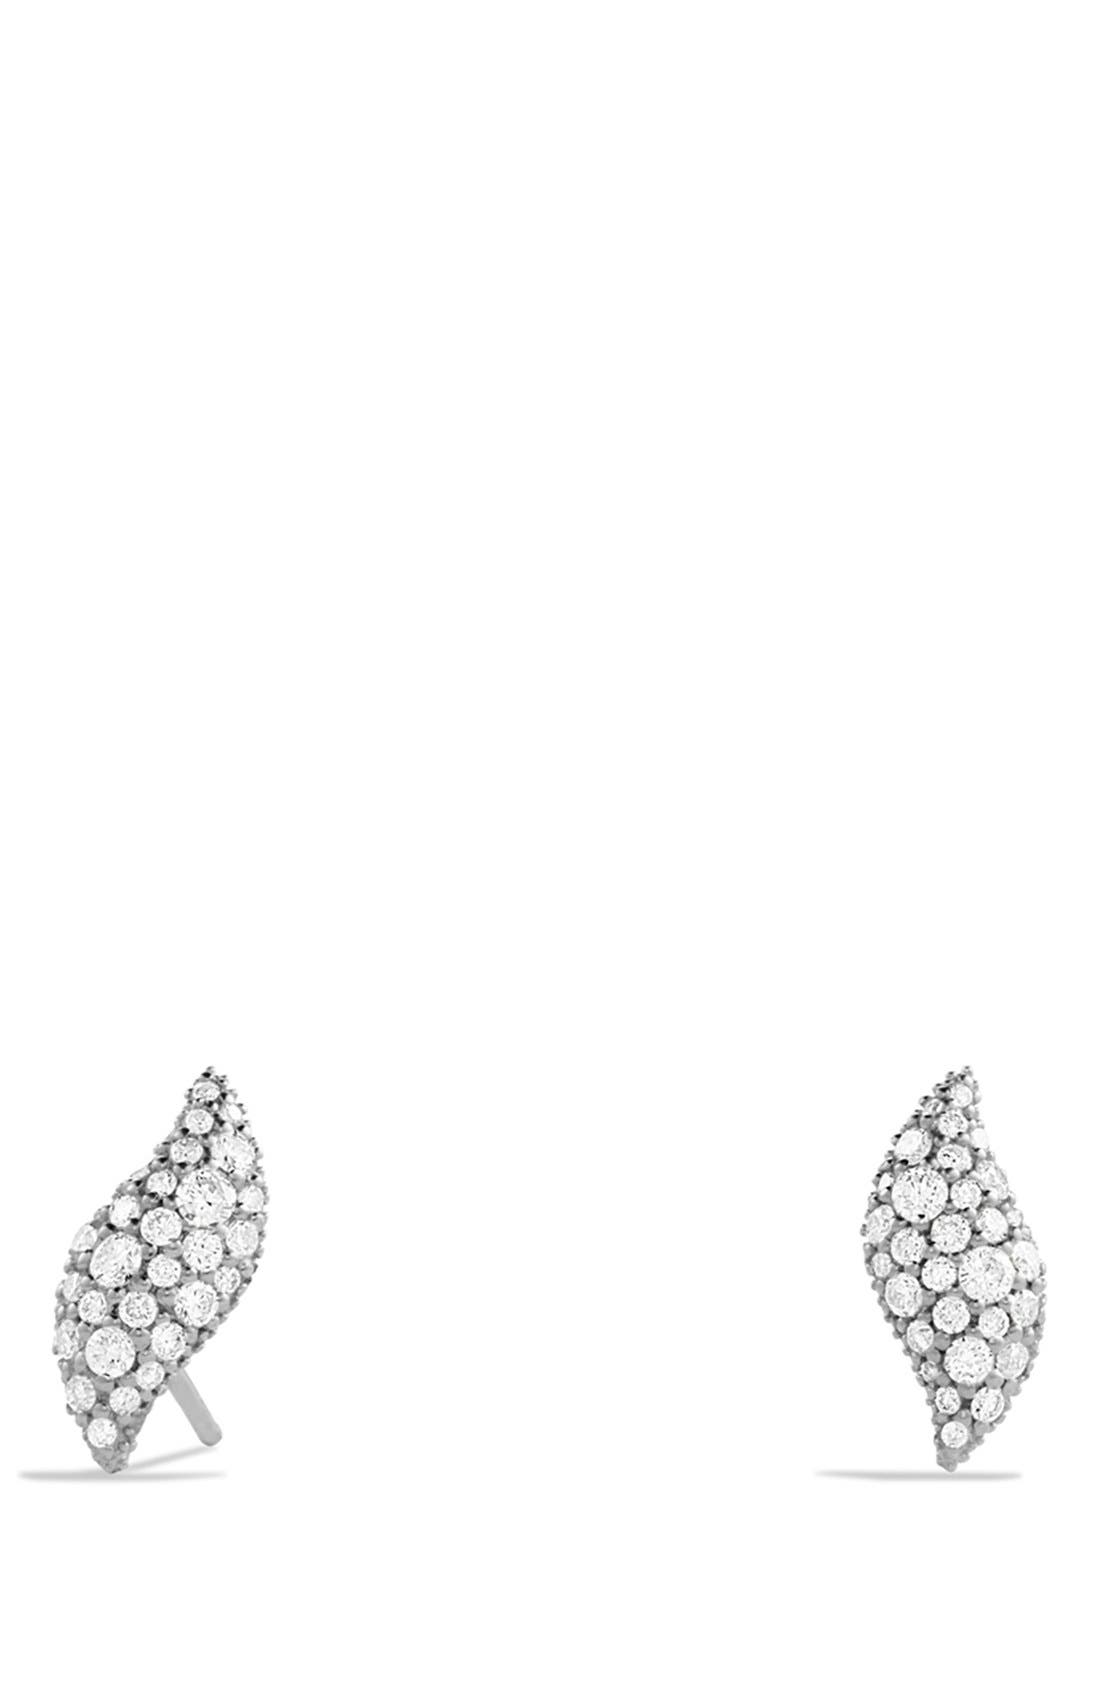 Main Image - David Yurman 'Hampton Cable' Earrings with Diamonds